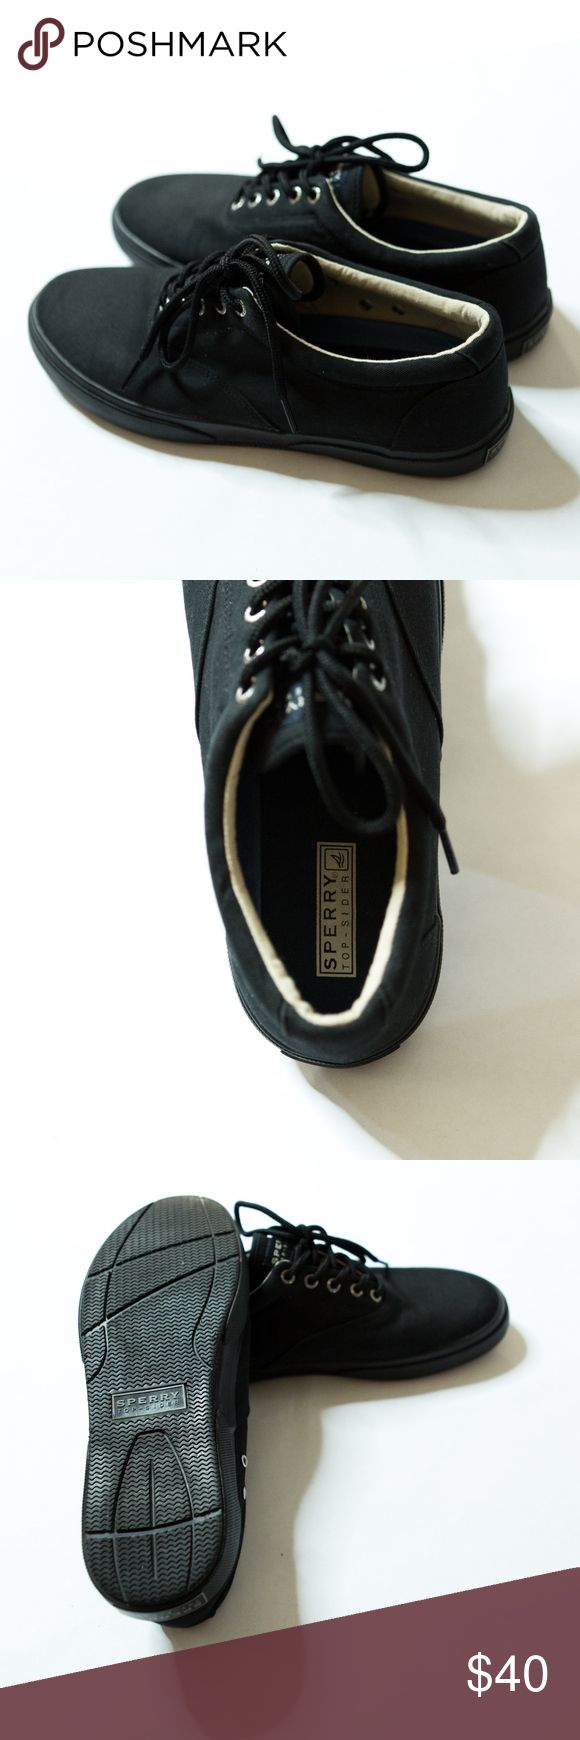 """Black canvas Sperry Top-Sider men's 10.5 Black canvas Sperry Top-Sider men's 10.5. Black uppers and soles. Excellent shape! Toe to heel = 12"""" Widest point of sole of shoe = 4"""" Feel free to ask questions or make an offer!  Sperry Shoes Sneakers"""